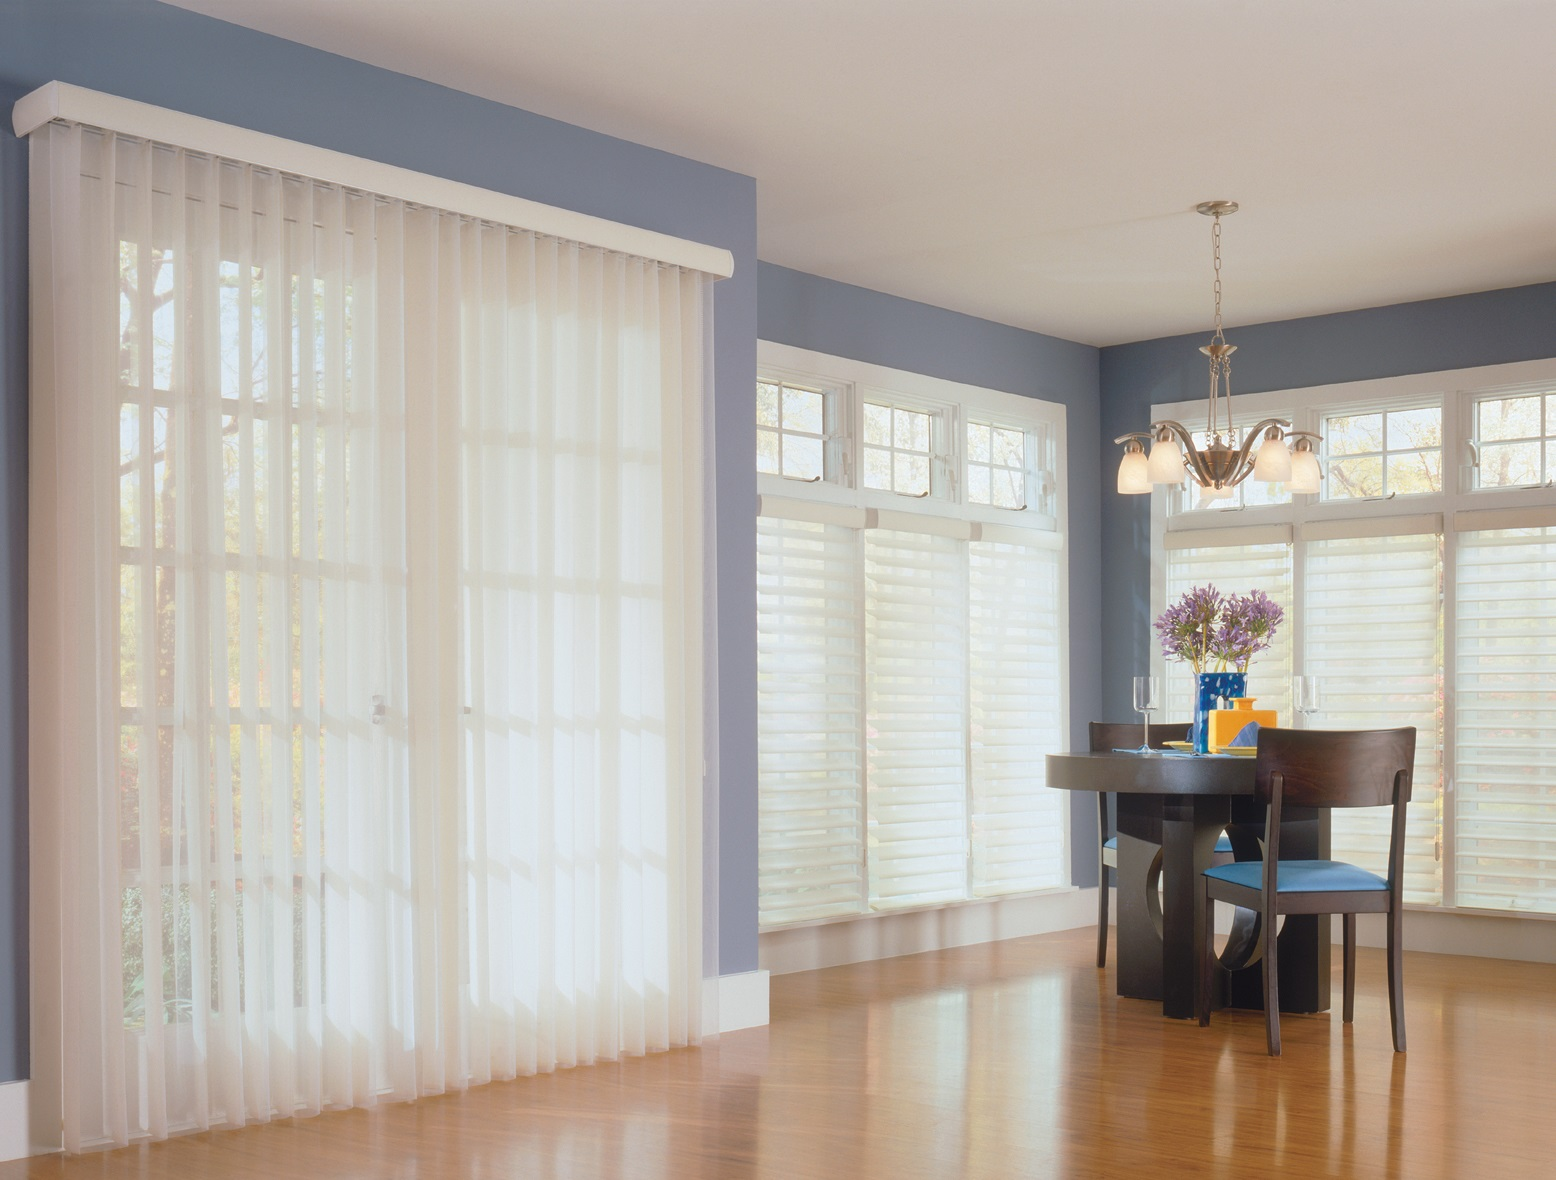 Rejuvenate Your Home With New Window Treatments For Easter Affordable Blinds